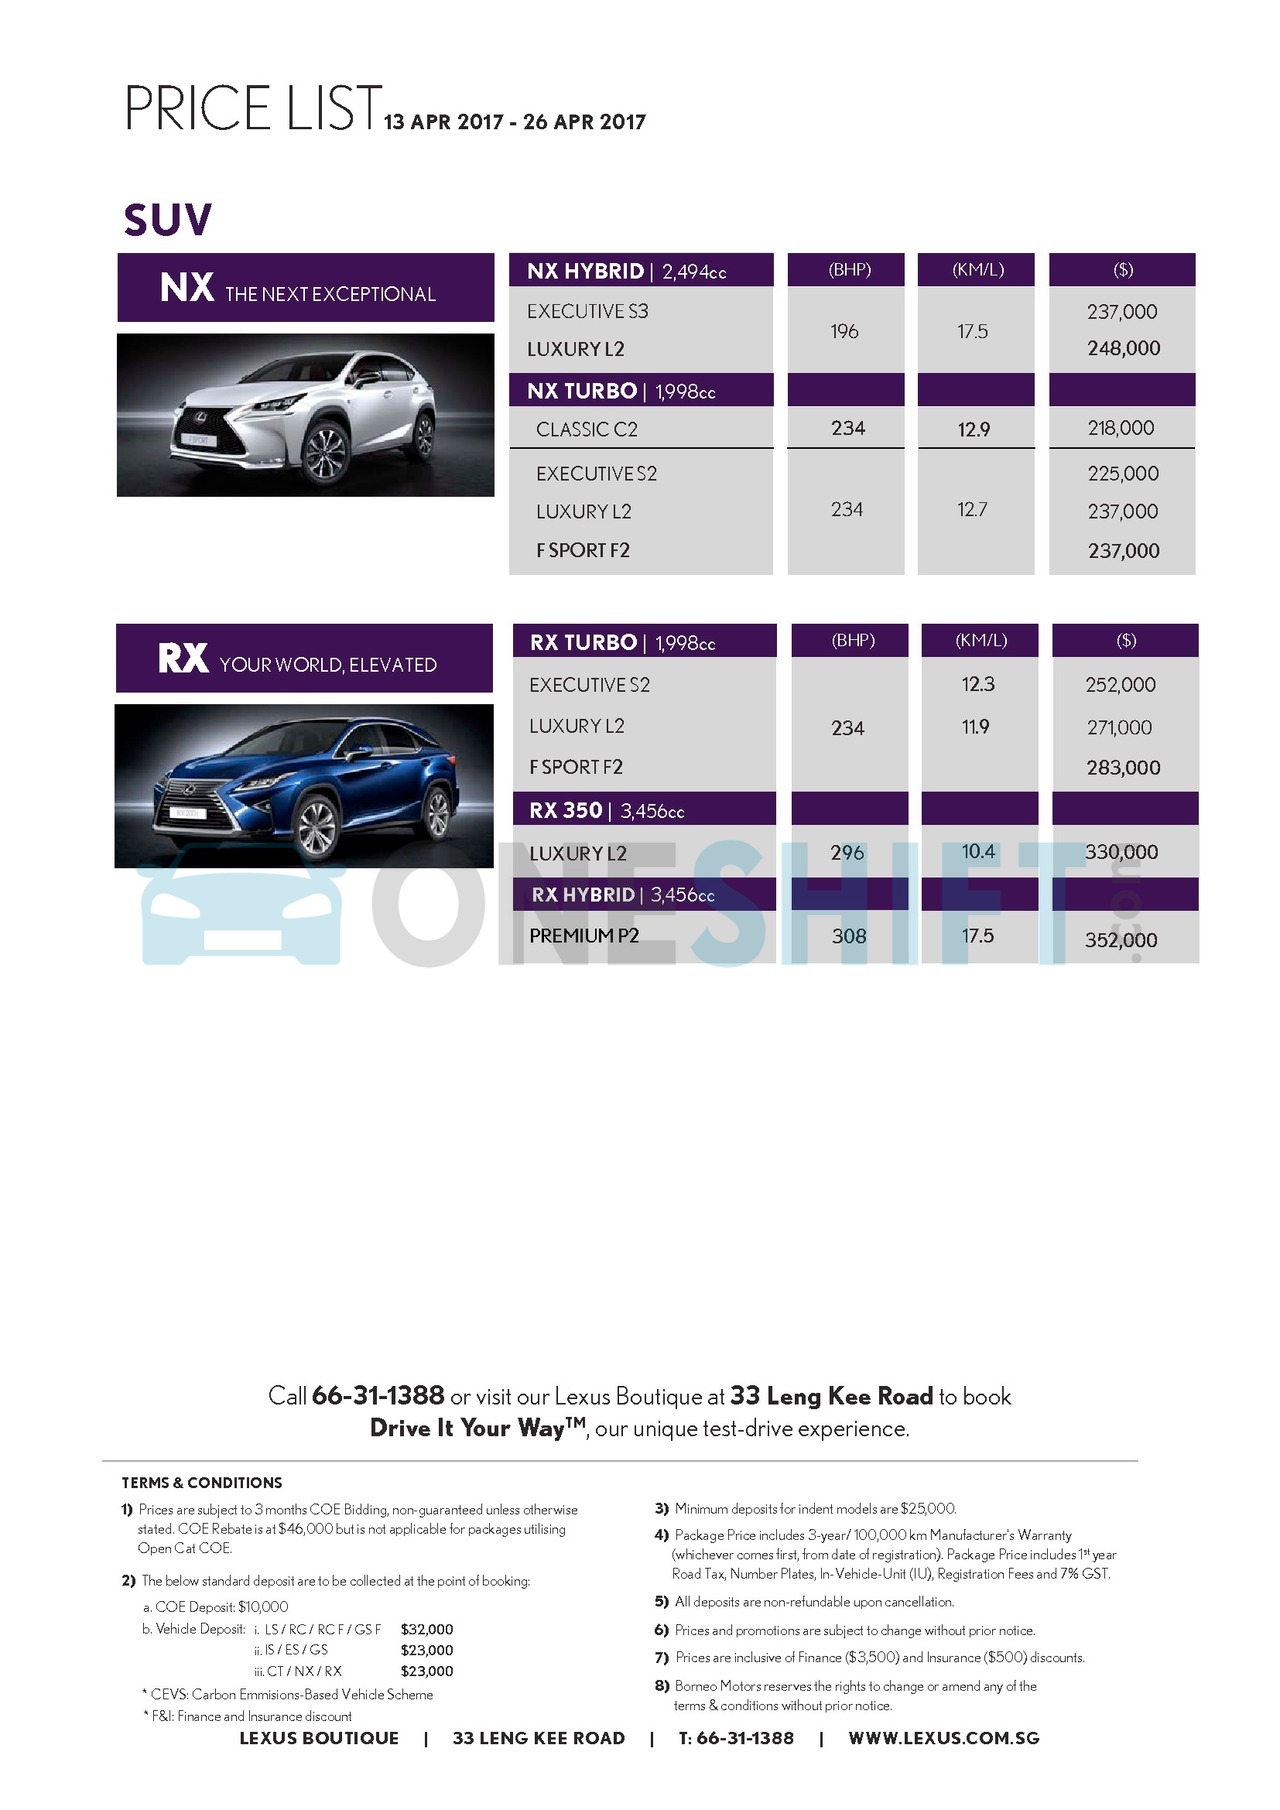 lexus Price List 4-13-2017 Page 2